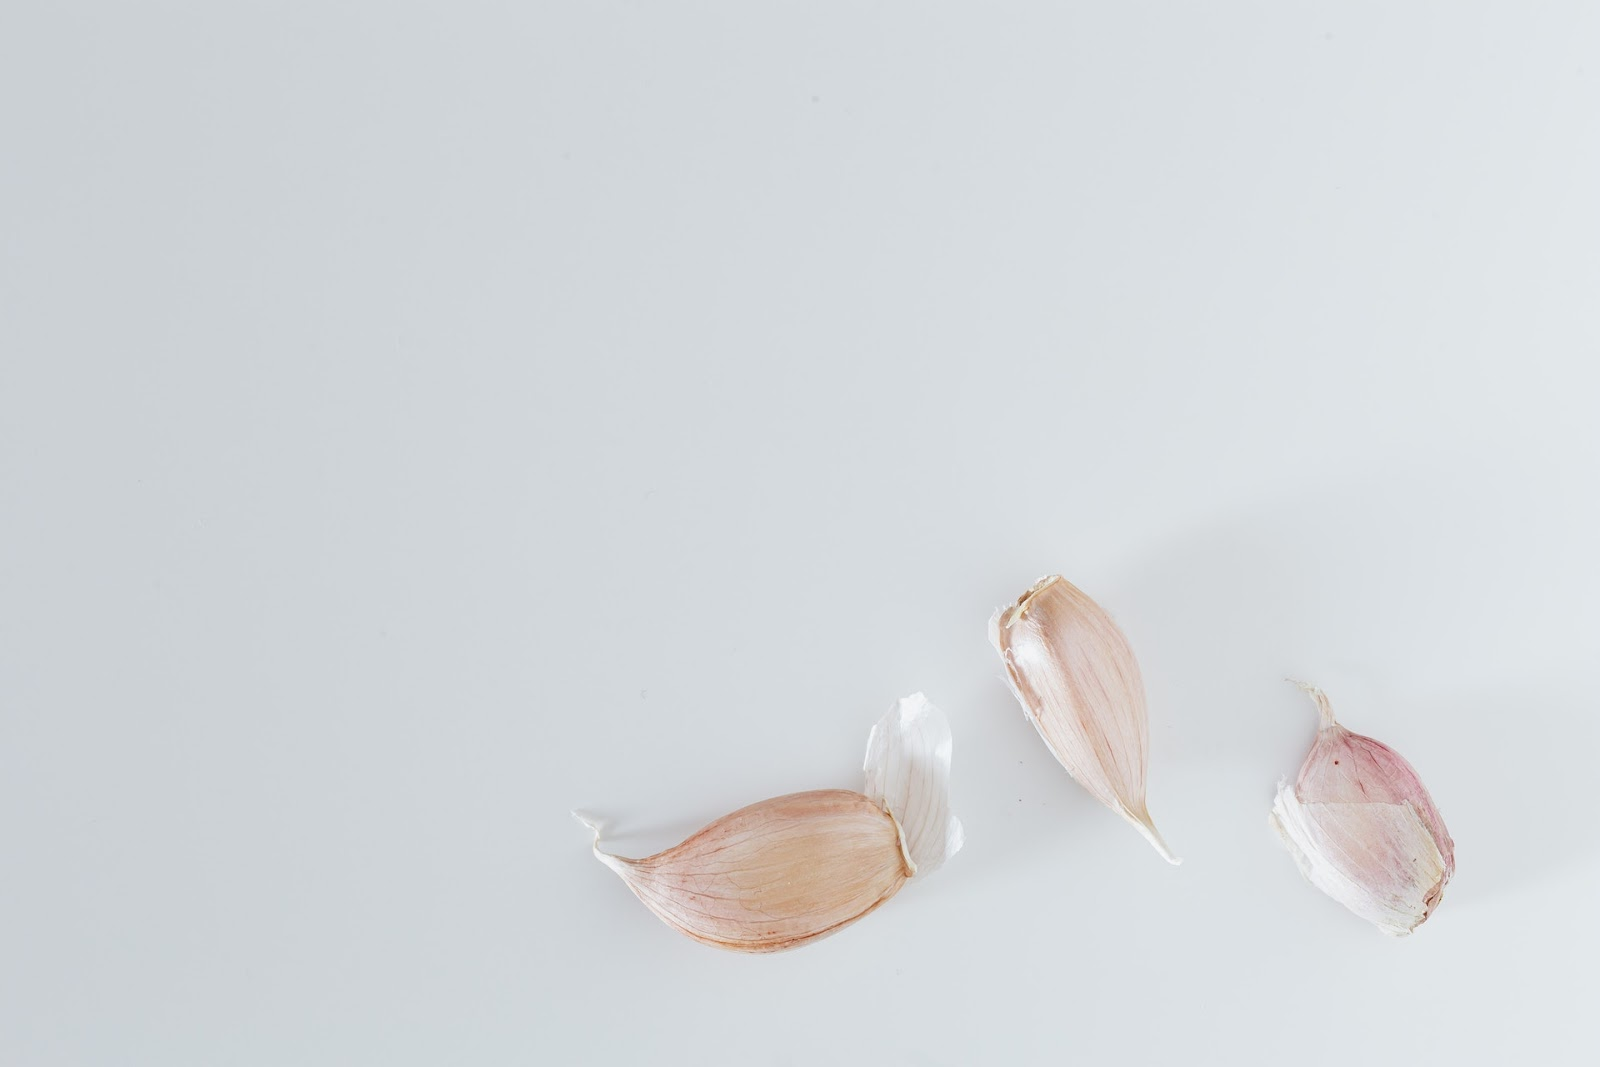 Three cloves of garlic on a table.